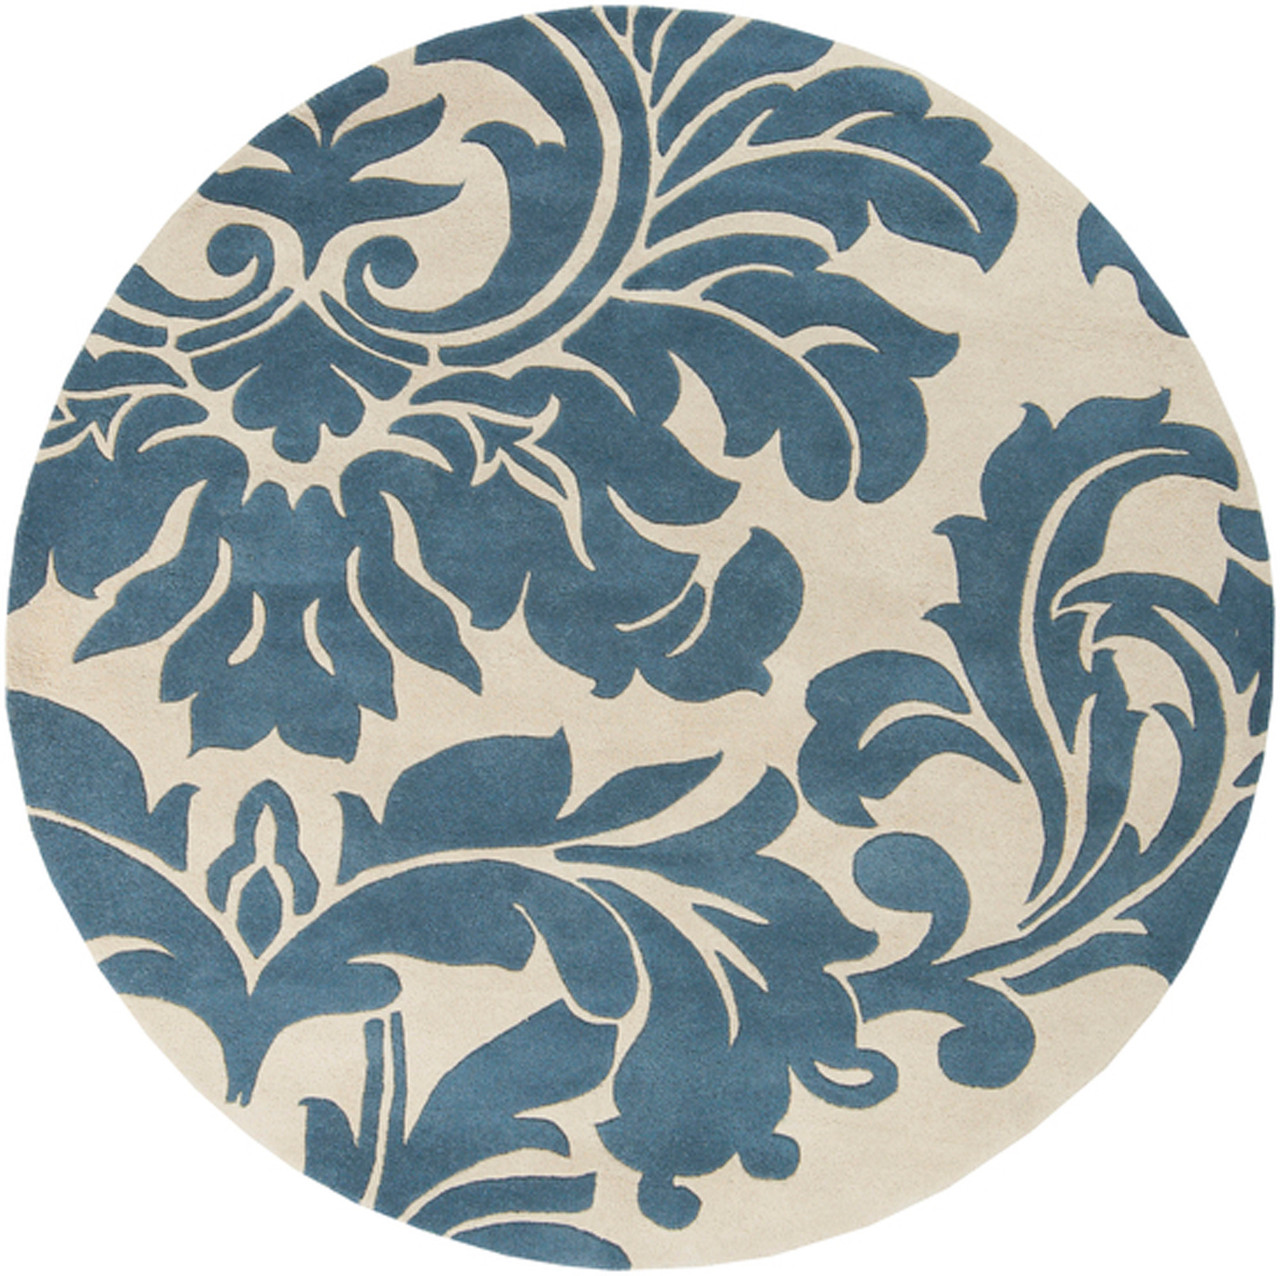 Blue And White Circle Rug: 4' Falling Leaves Damask Slate Blue & Off-White Round Wool